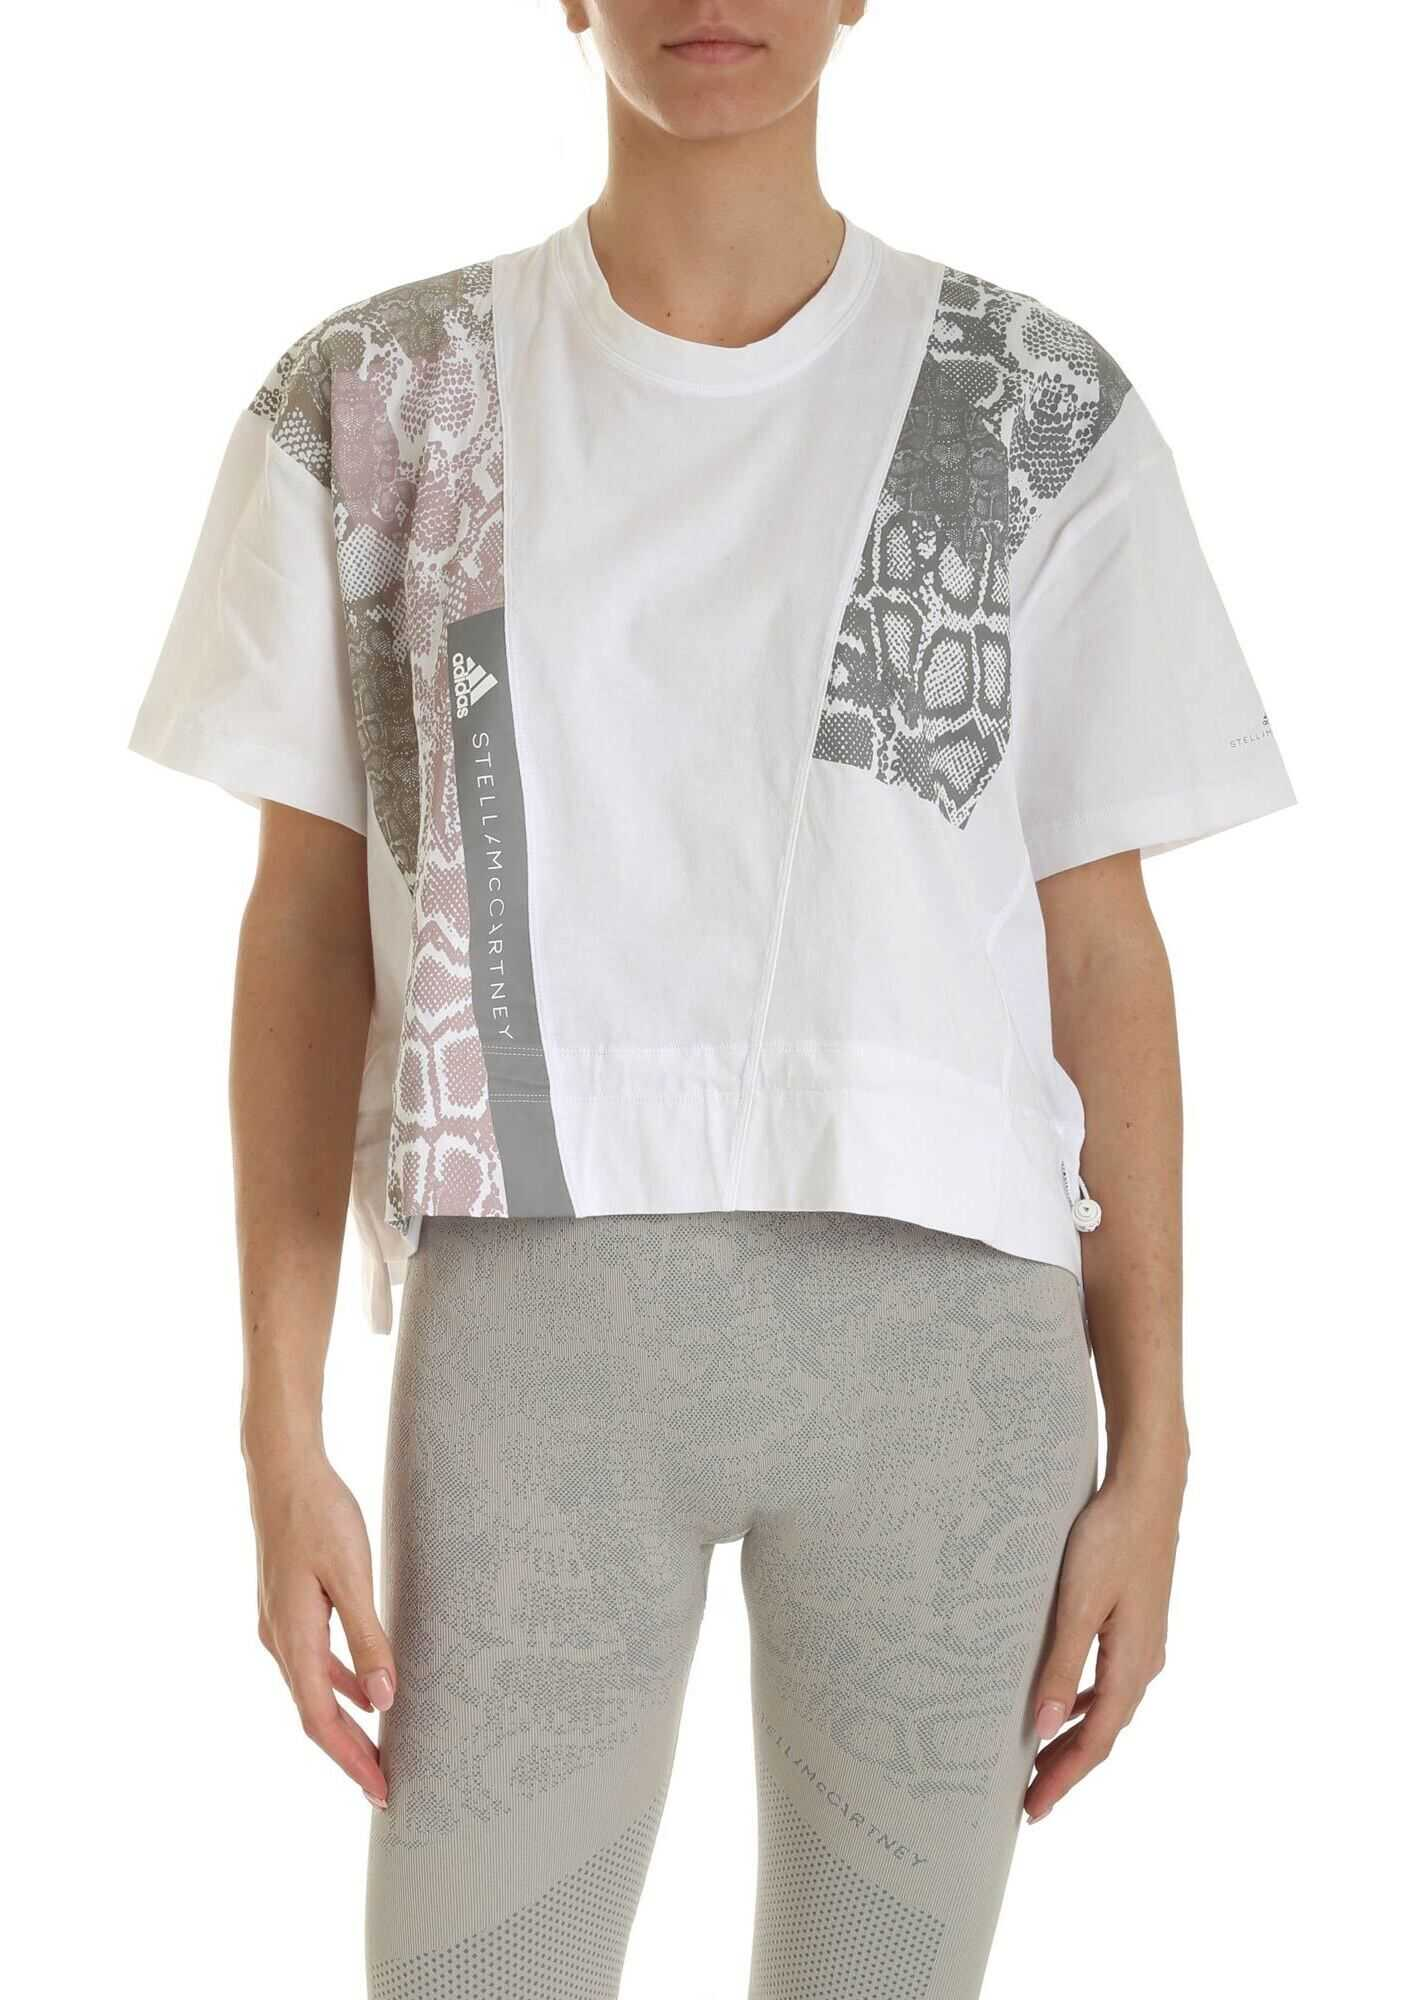 adidas by Stella McCartney Graphic T-Shirt In White White